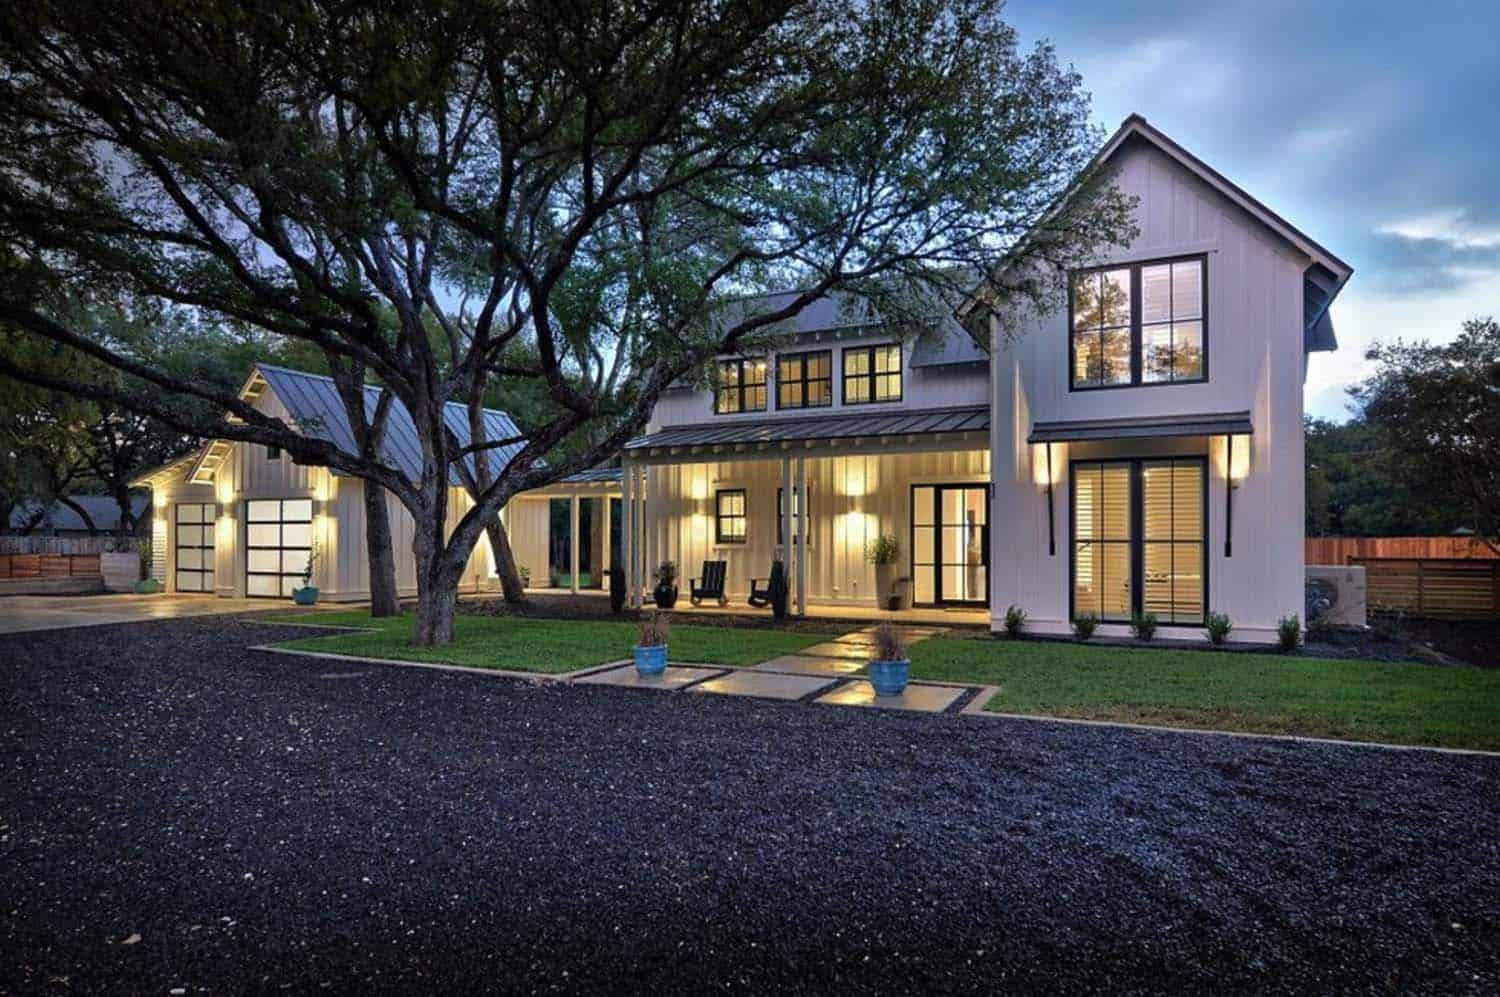 Modernized texas farmhouse filled with eye catching details for Modern farmhouse windows